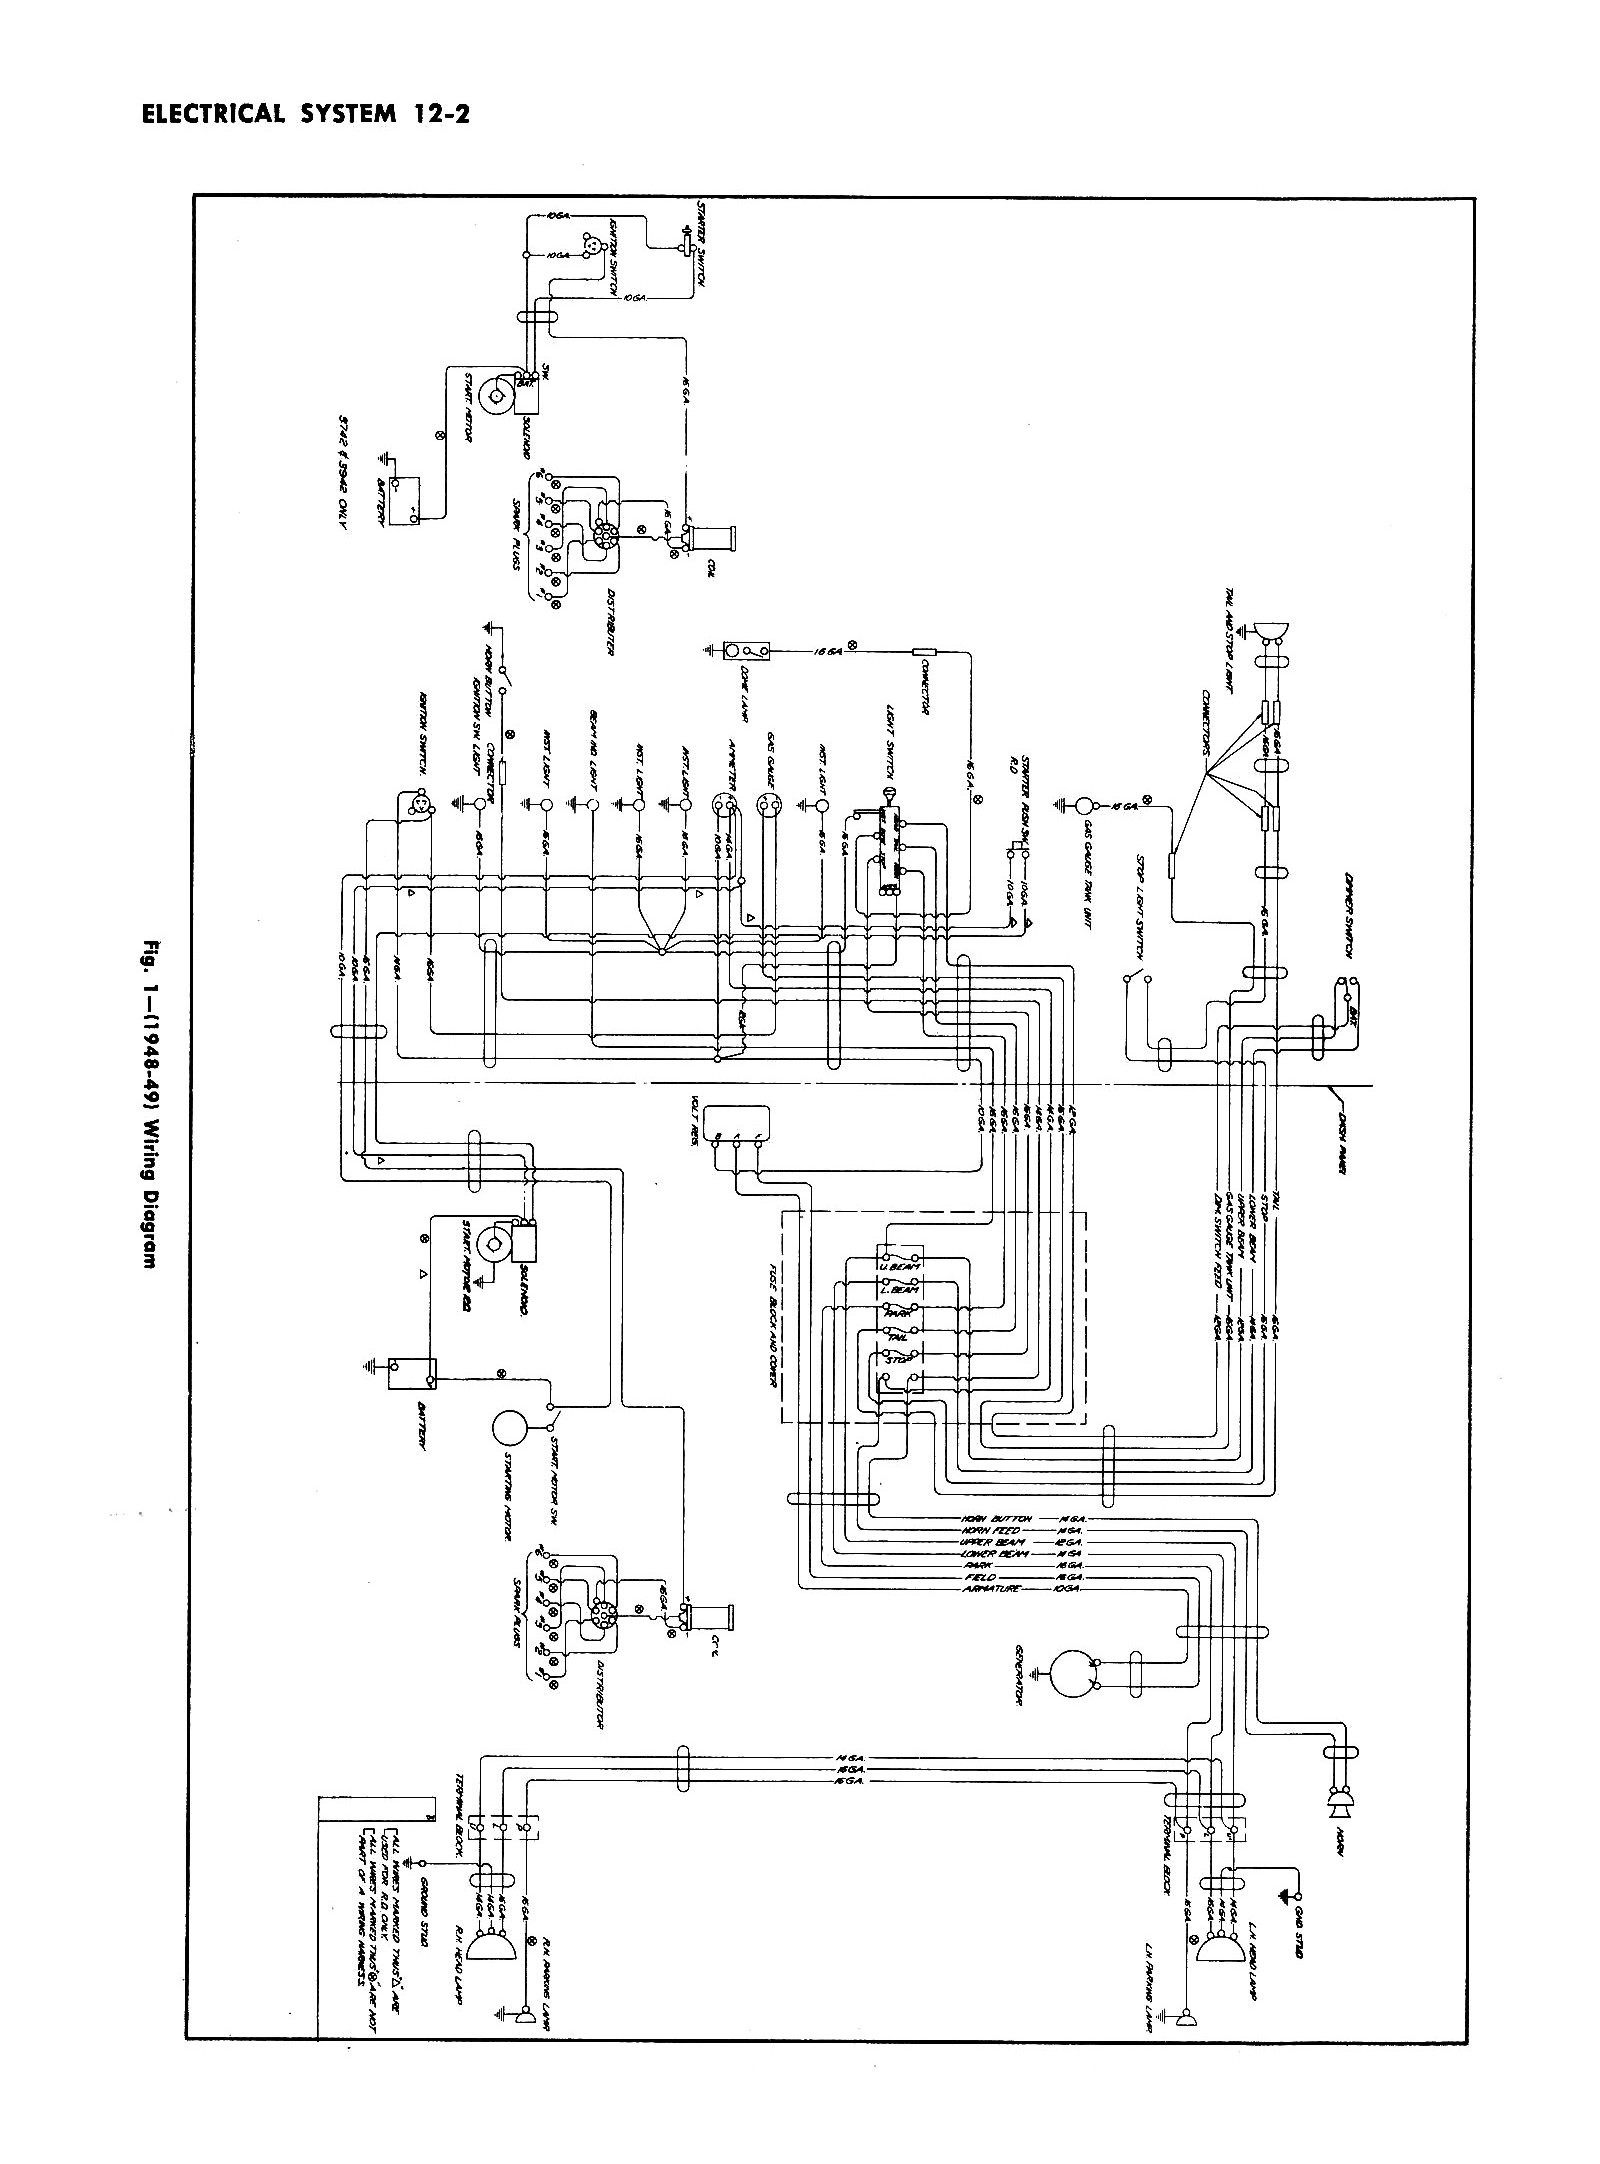 48car gmc ke switch wiring diagram wiring diagram simonand gm truck wiring harness at metegol.co